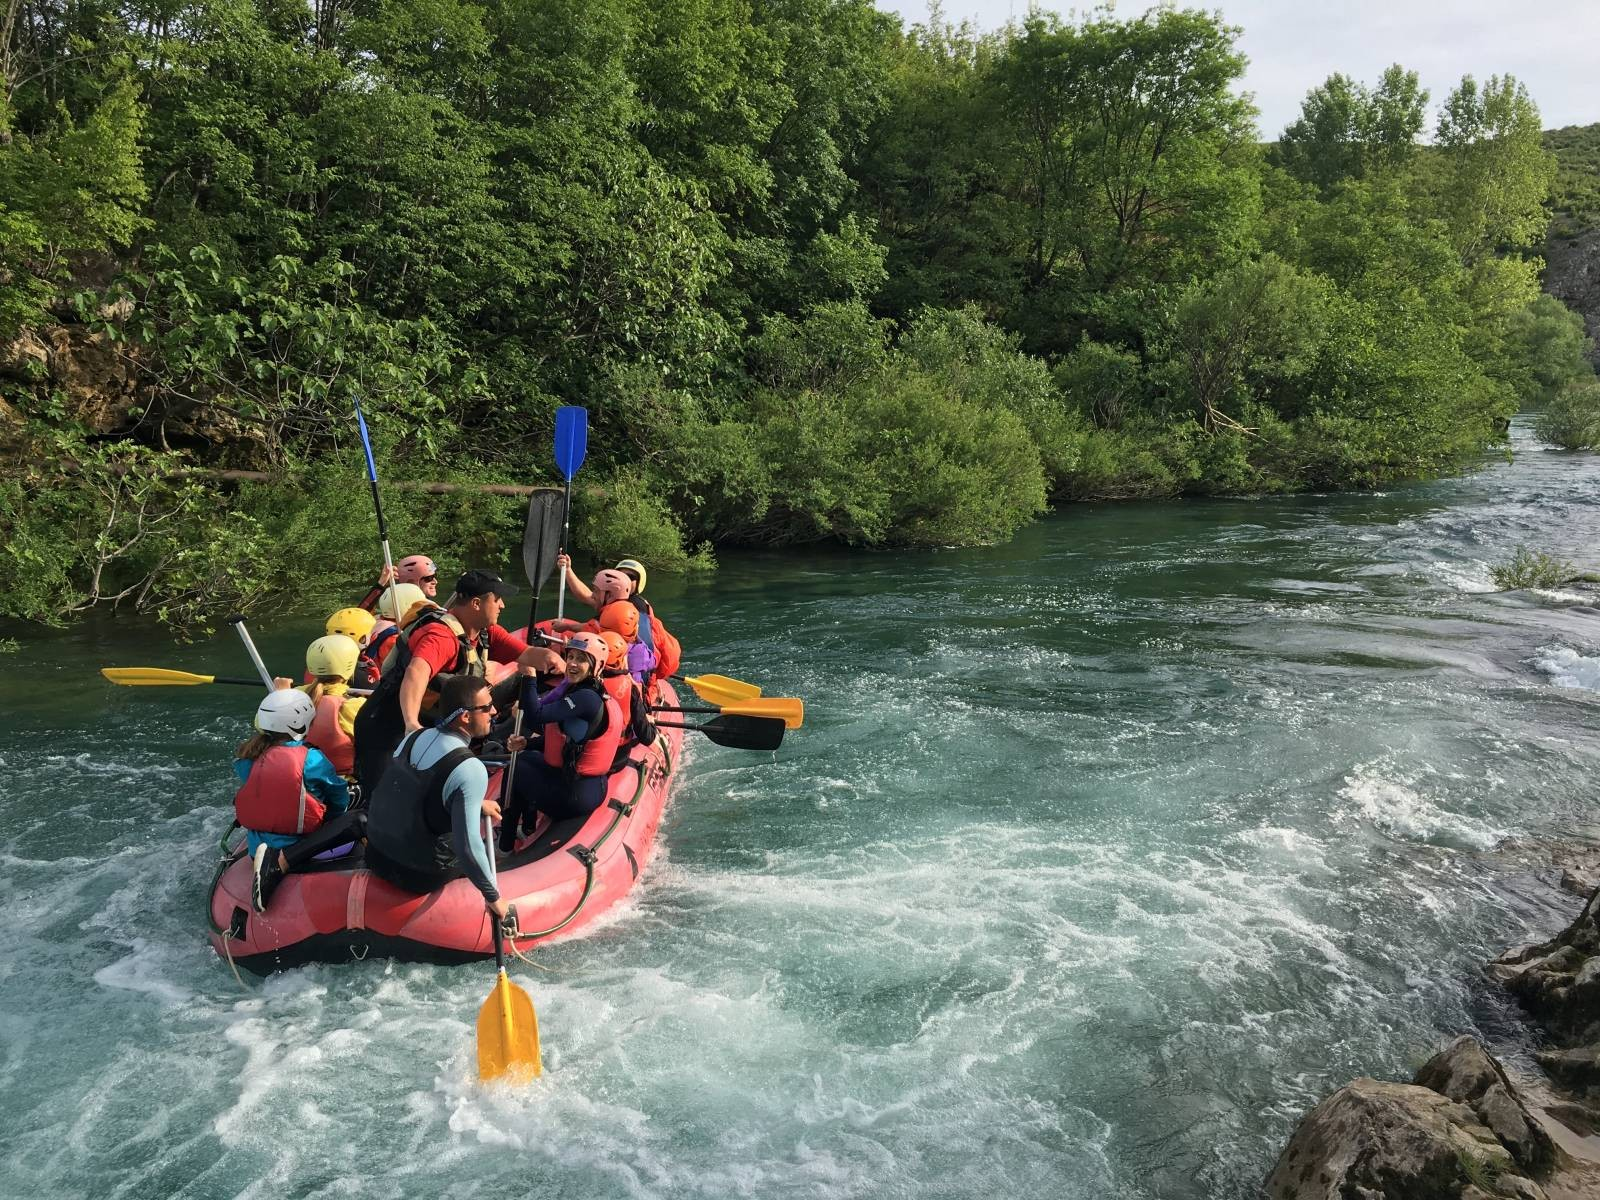 RAFTING at river Zrmanja, Croatia